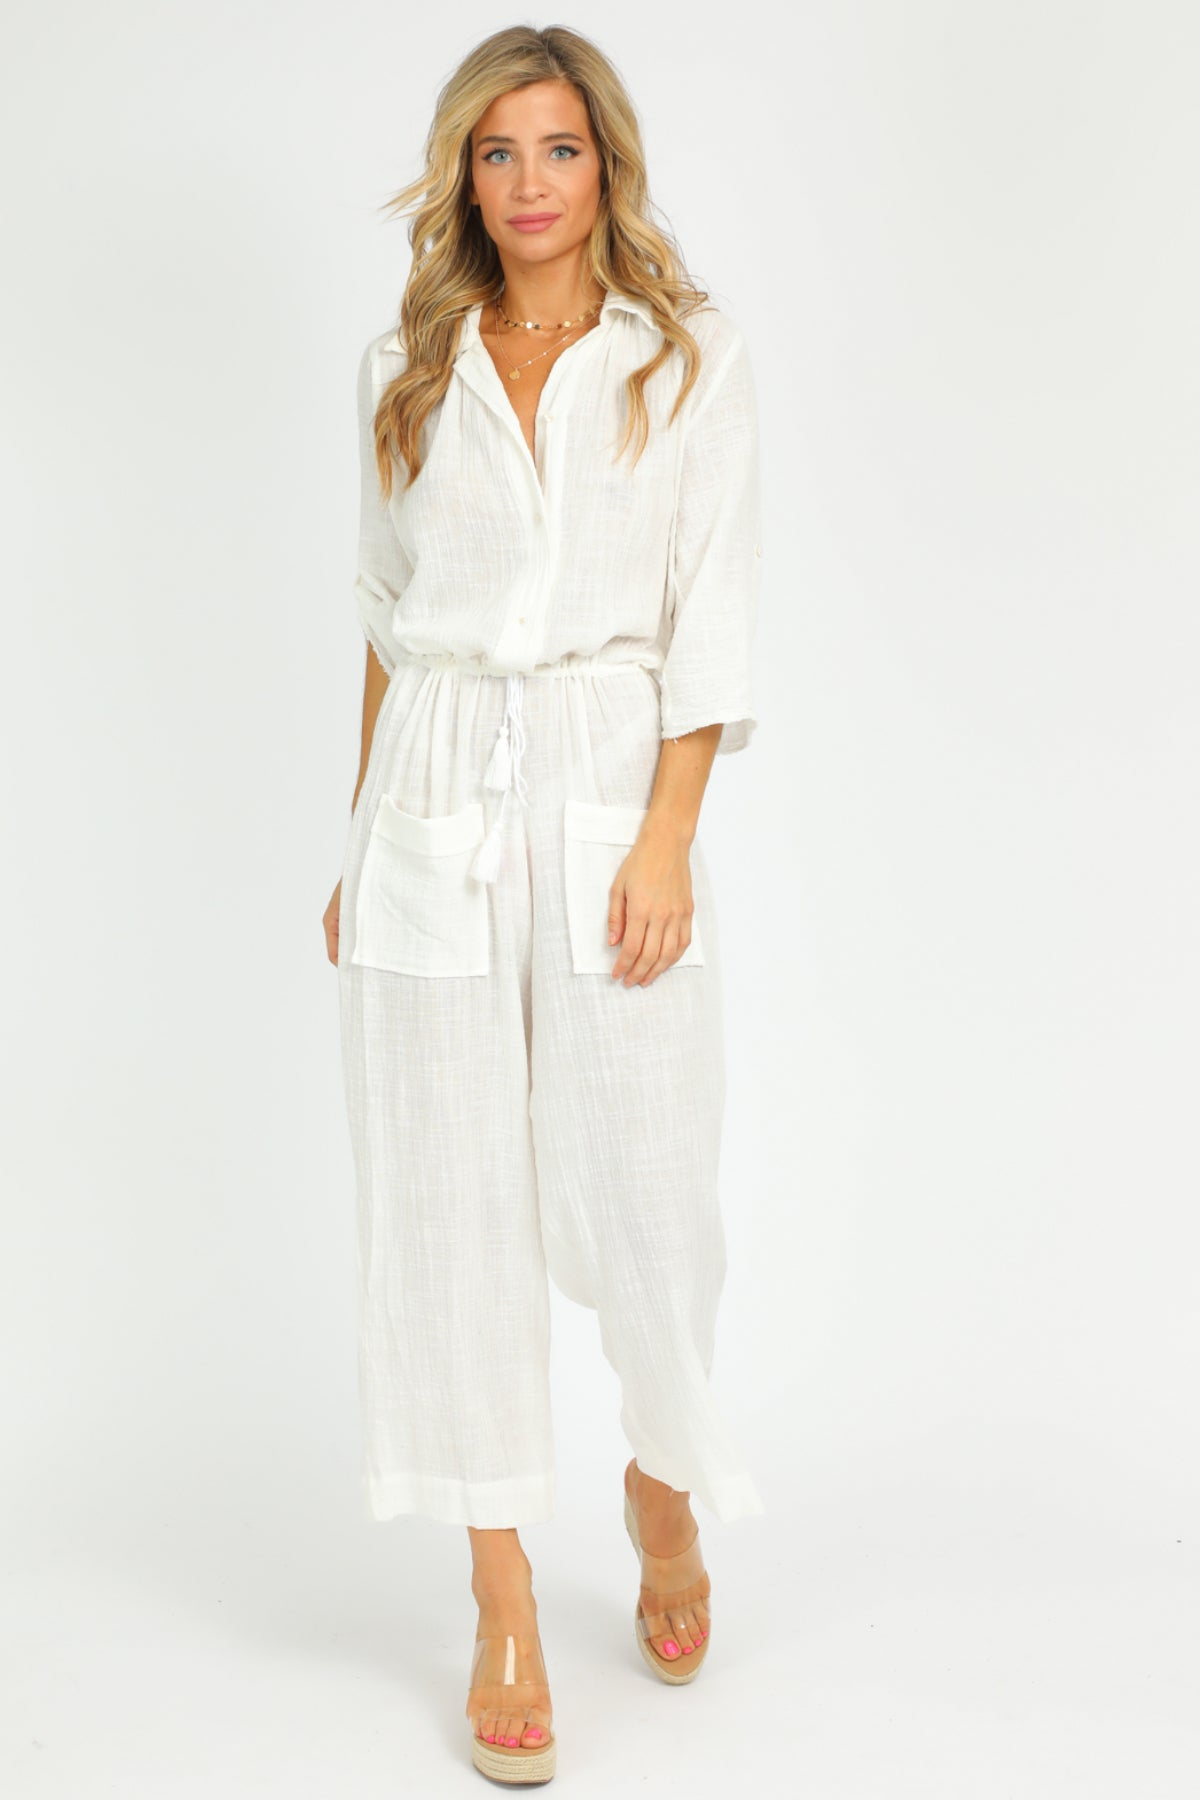 WHITE LINEN JUMPSUIT